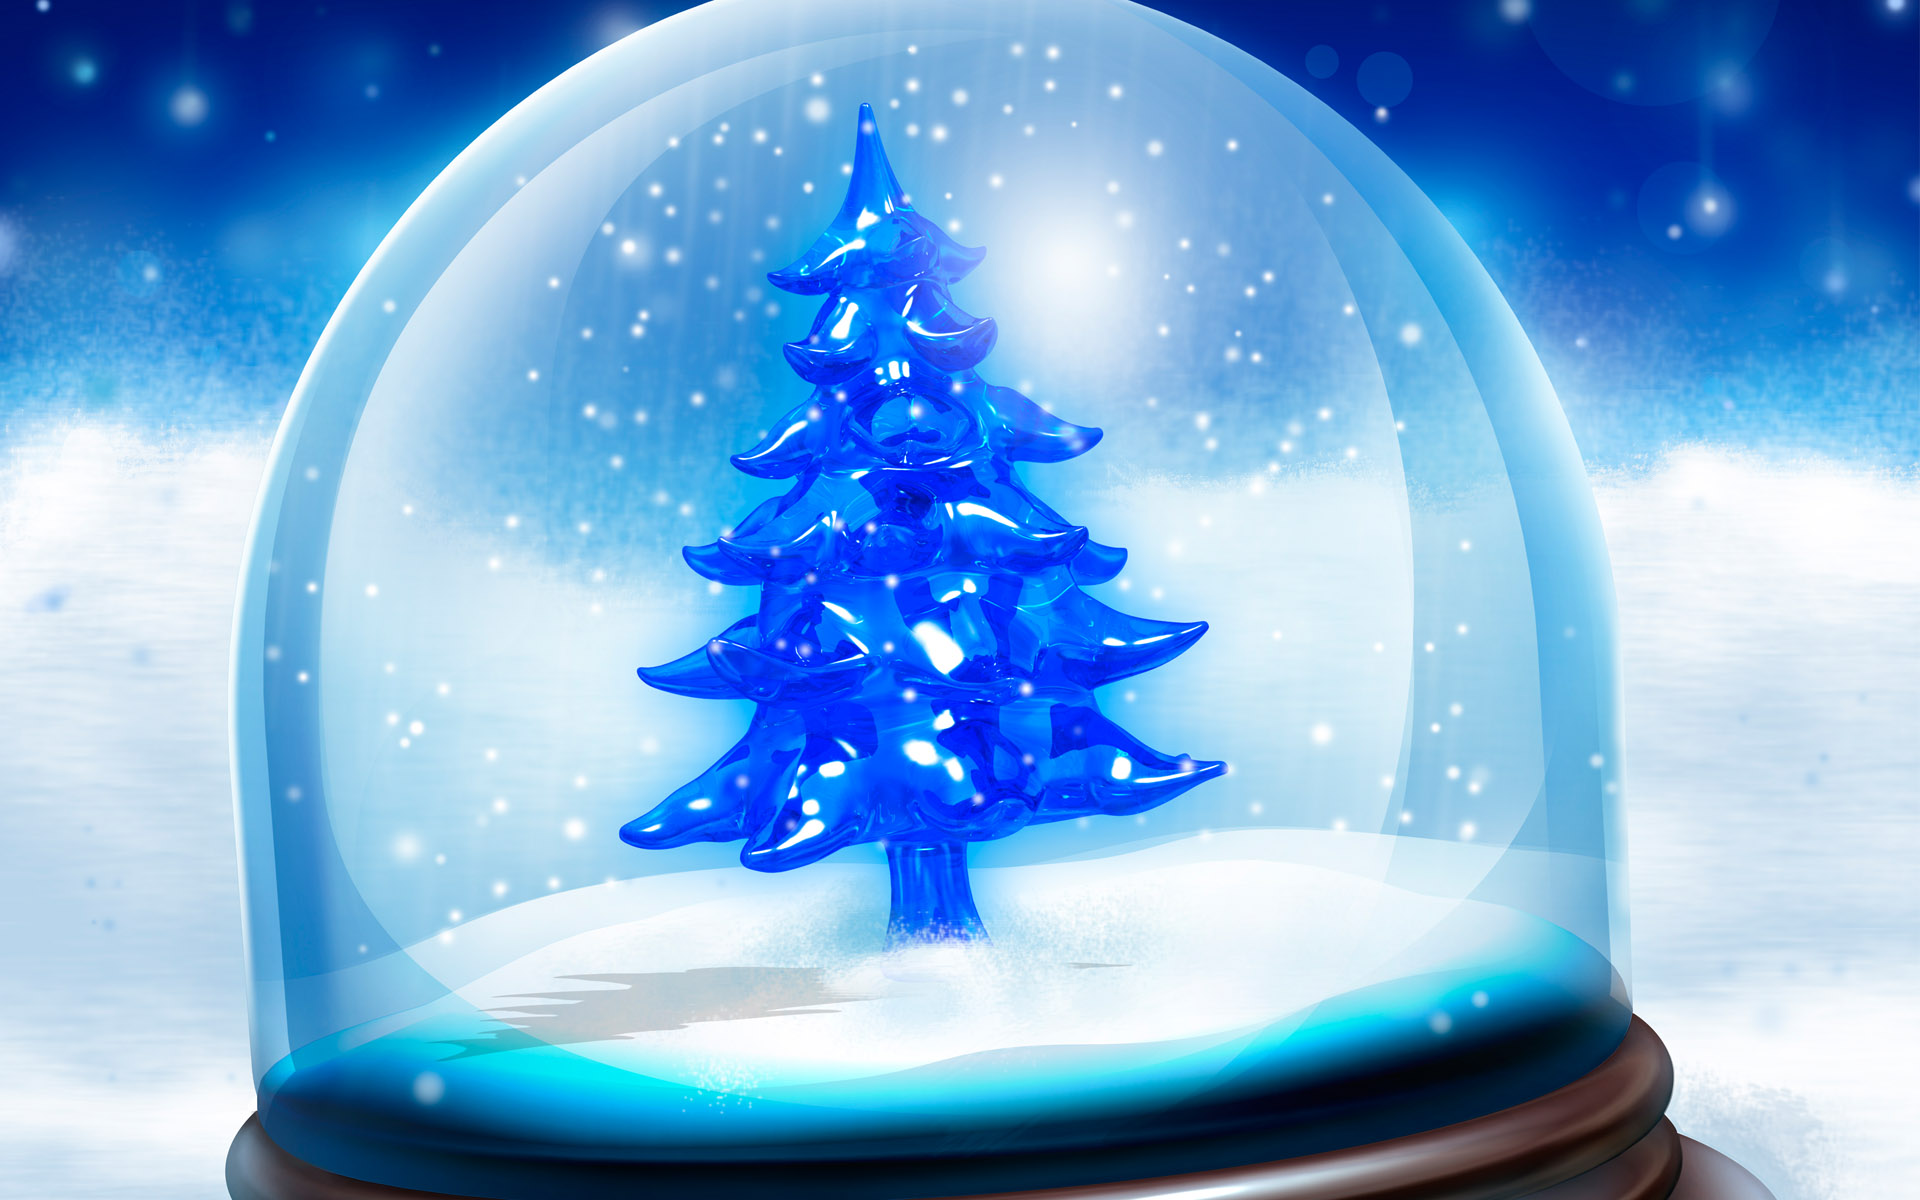 Snow Christmas Wallpapers